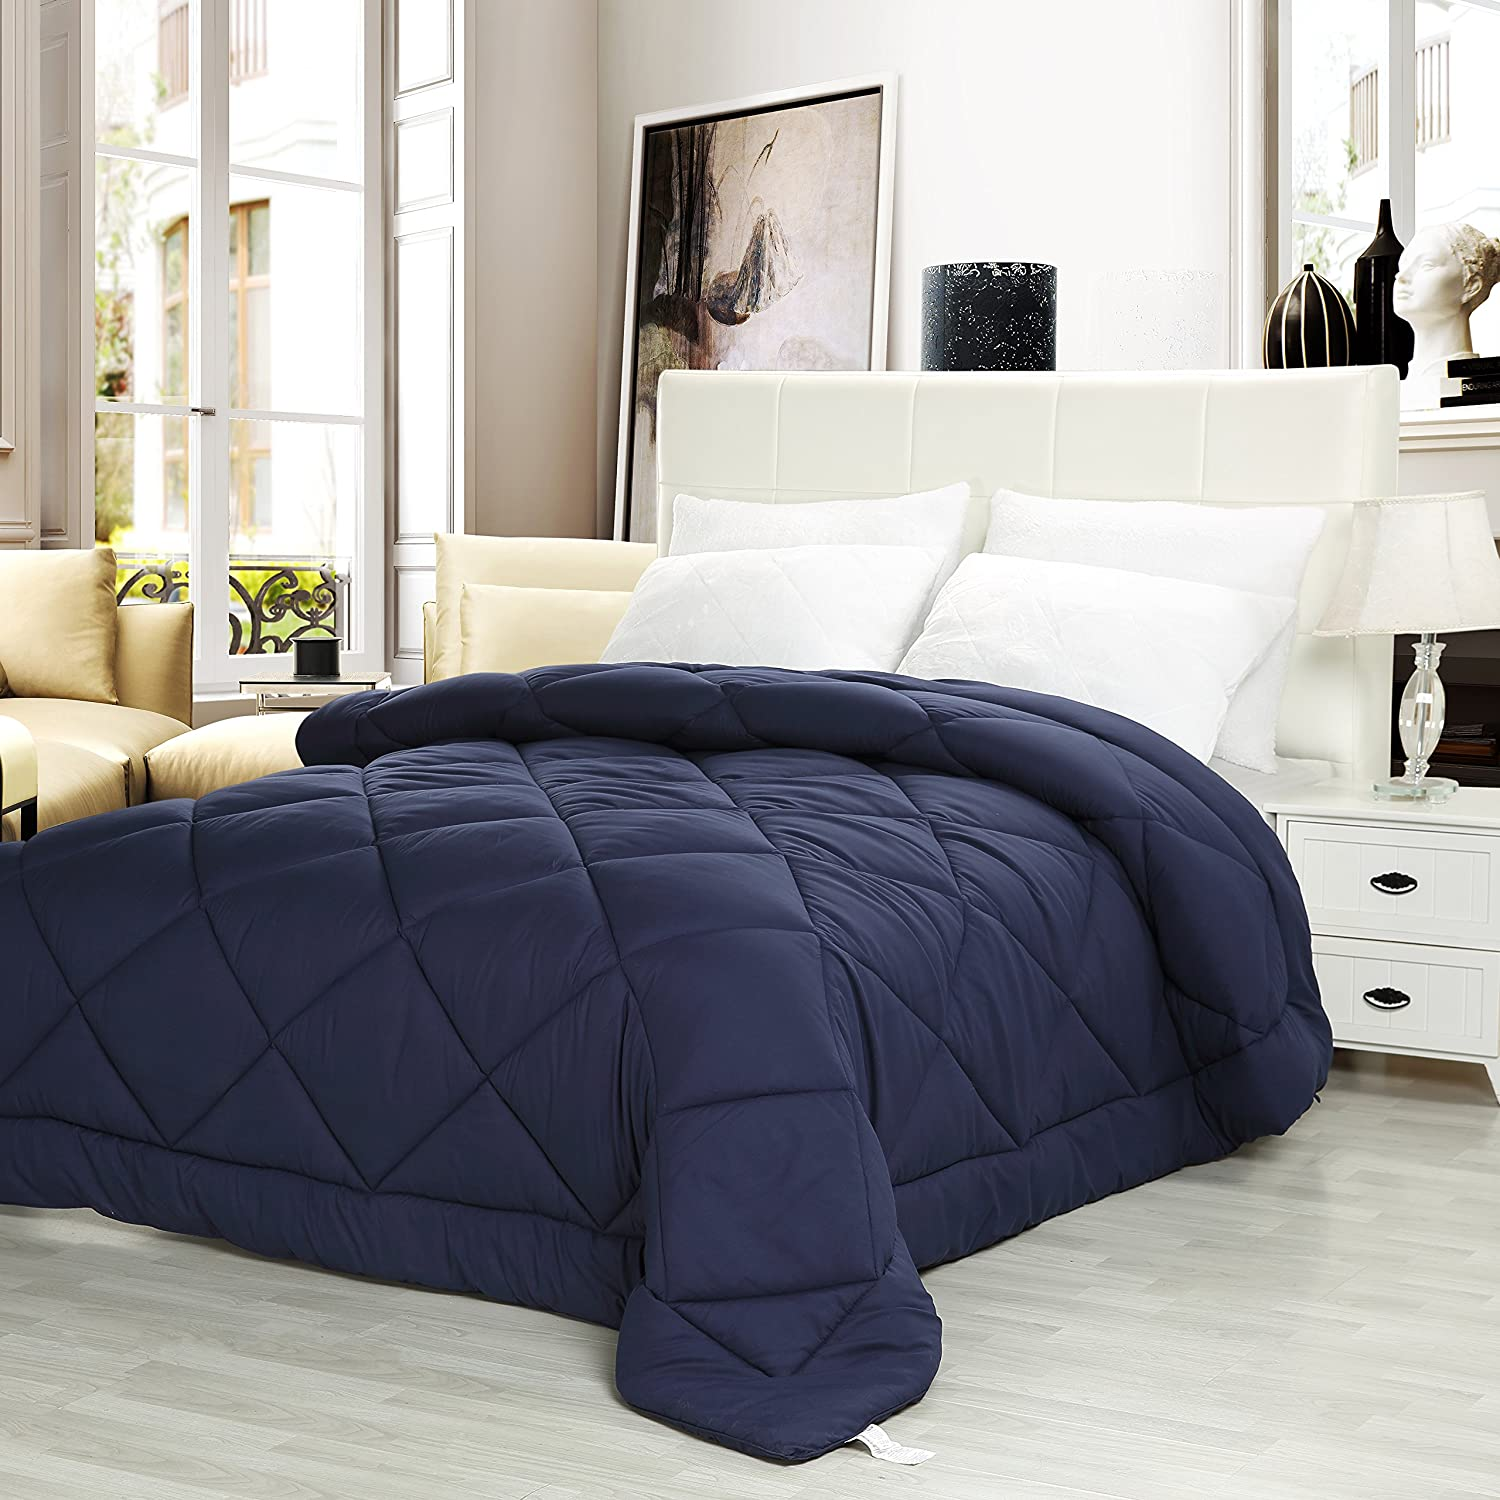 Utopia Bedding Comforter Duvet Insert (Queen) - Ultra Plush Hypoallergenic, Siliconized fiberfill, Down Alternative Comforter Navy